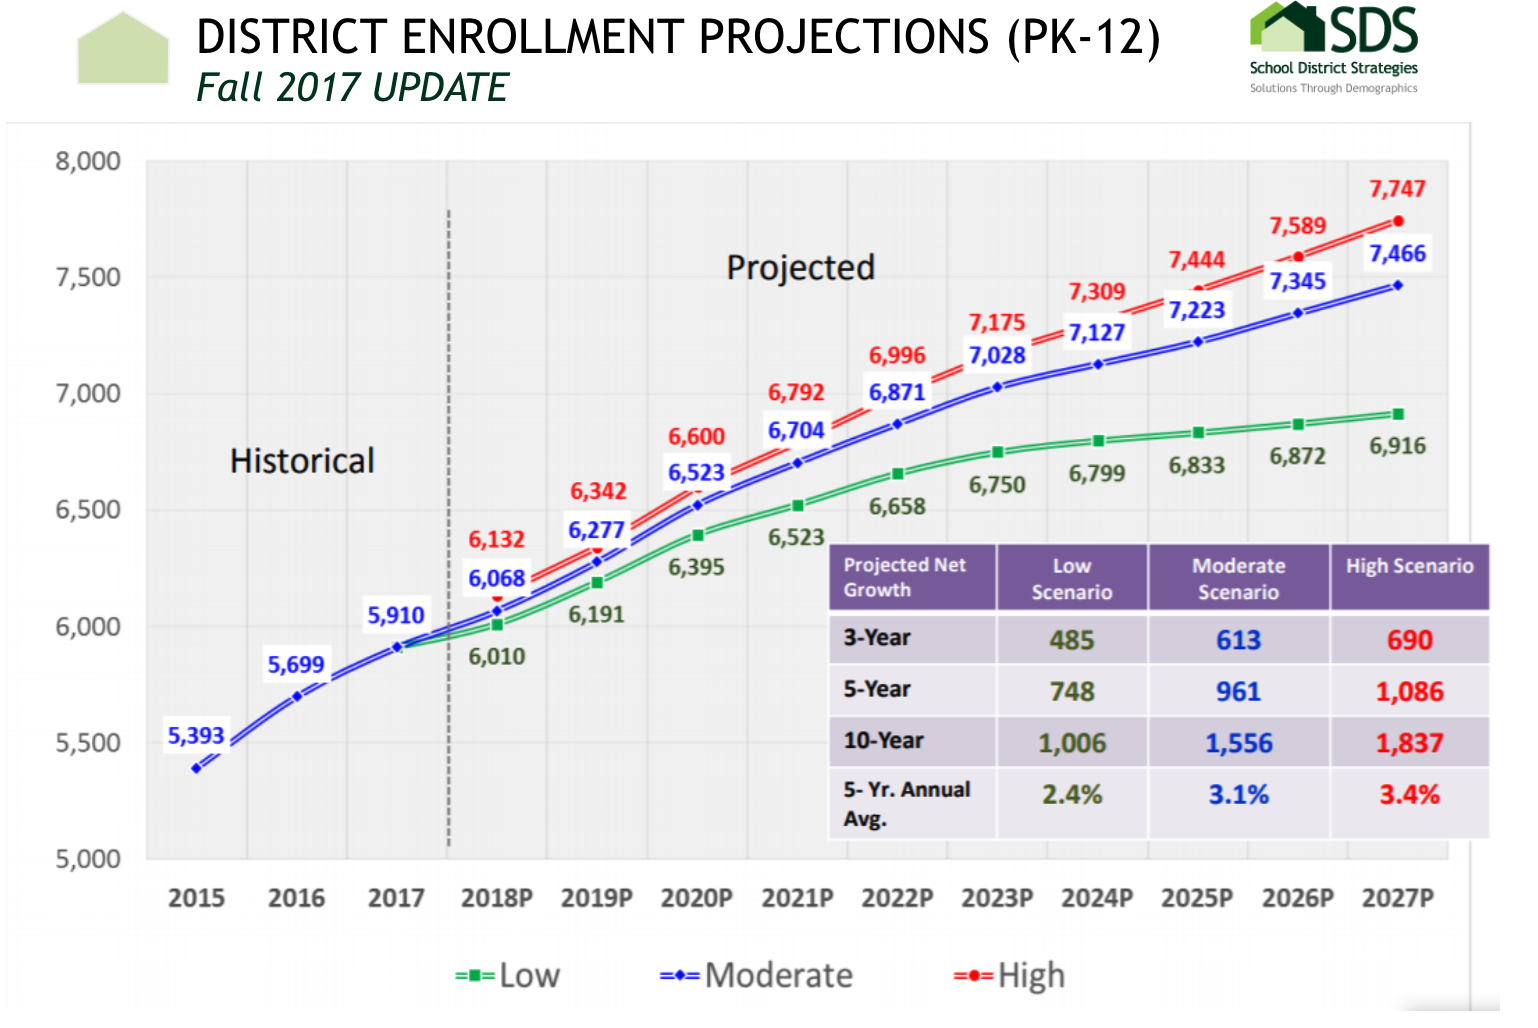 Demographer growth projections for LISD